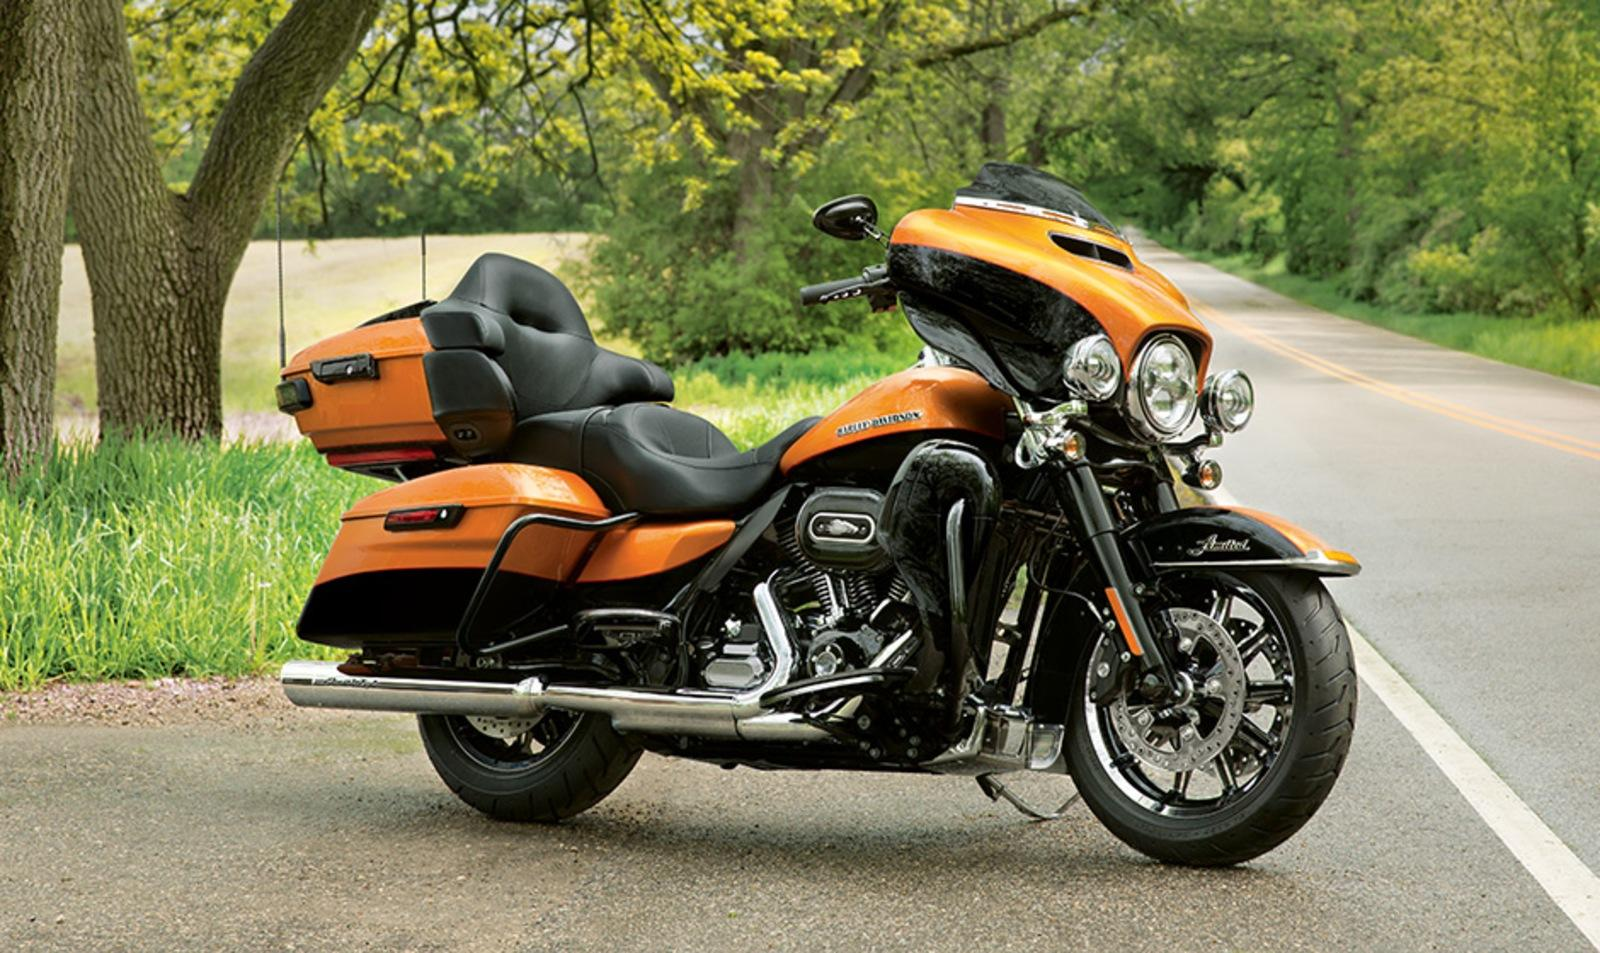 2014 Harley Davidson Ultra Limited Review